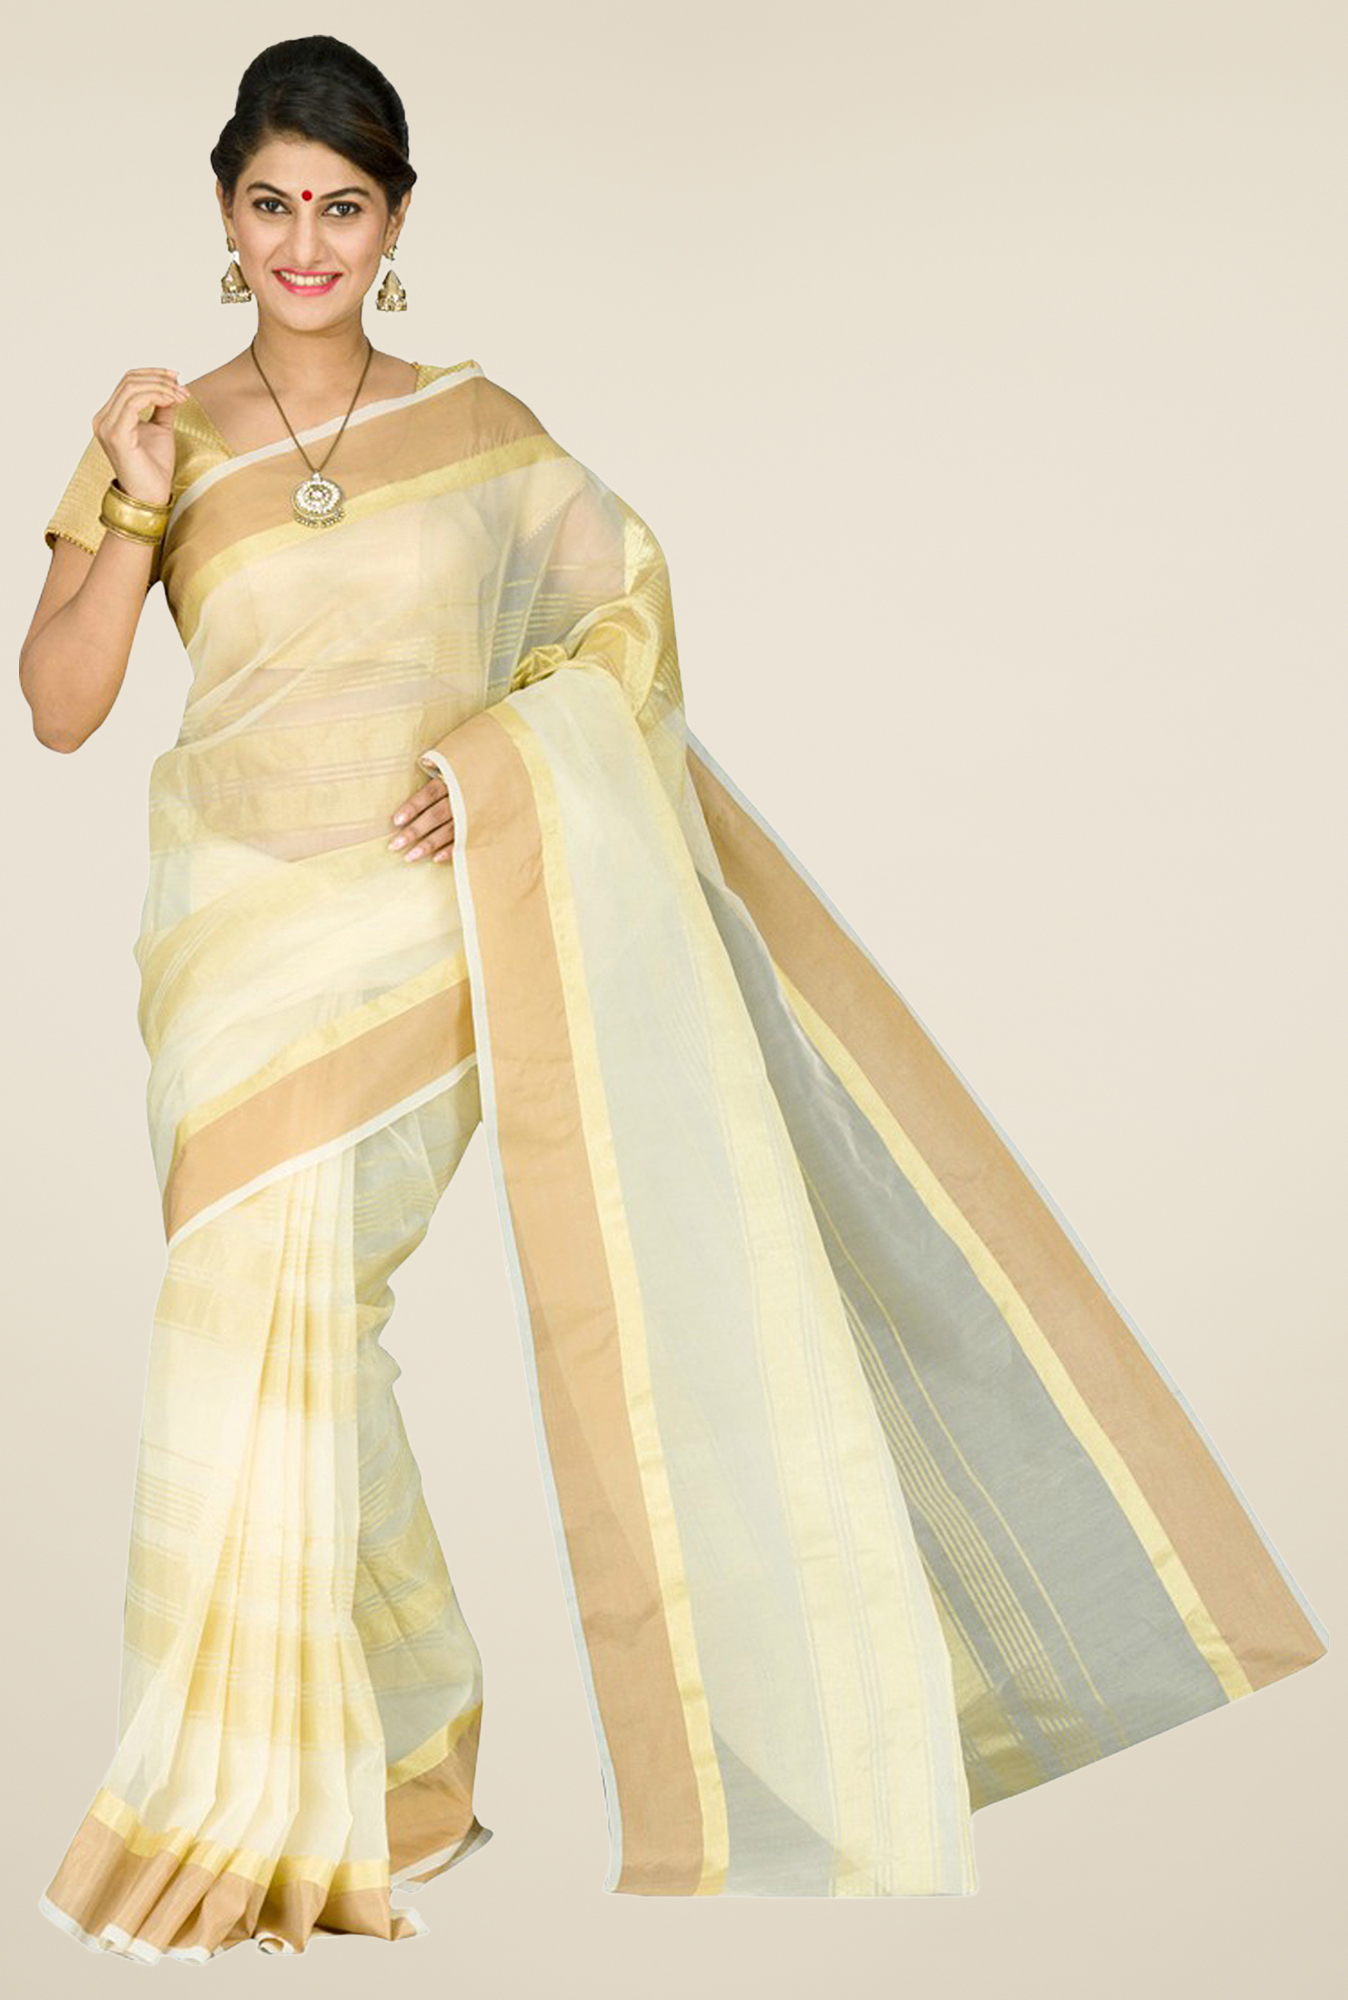 Pavecha's Beige Banarasi Cotton Silk Saree at Just Rs. 499 discount offer